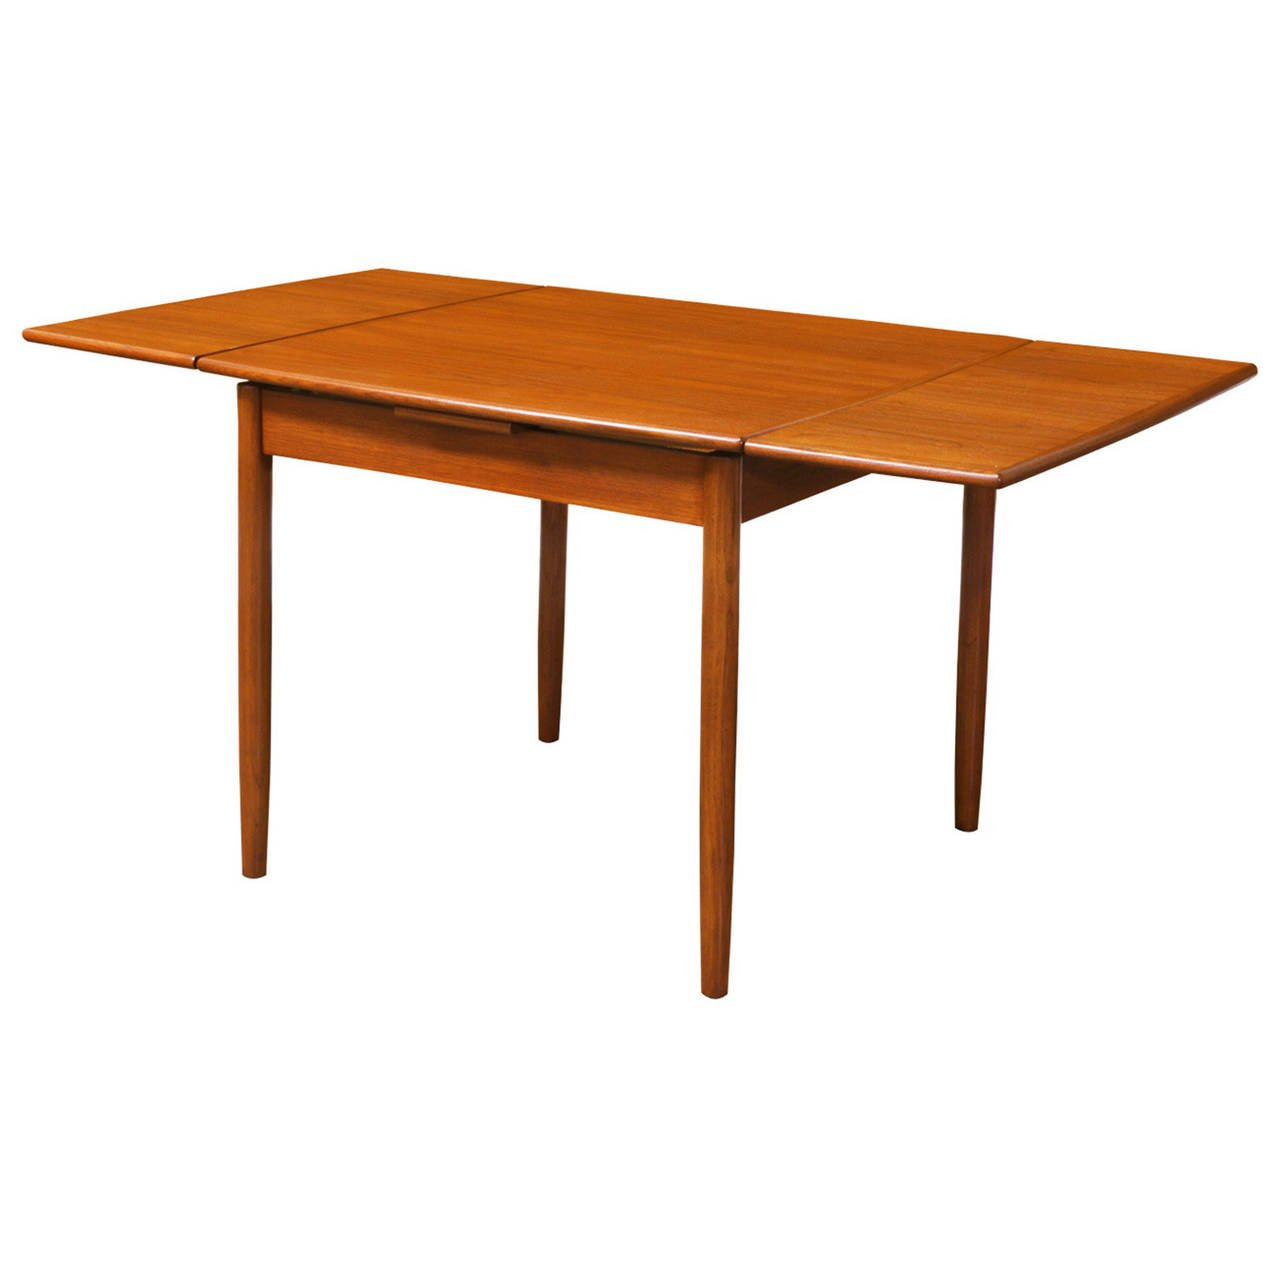 Best ideas about Dining Room Table With Leaf . Save or Pin Danish Modern Teak Square Draw Leaf Dining Table at 1stdibs Now.